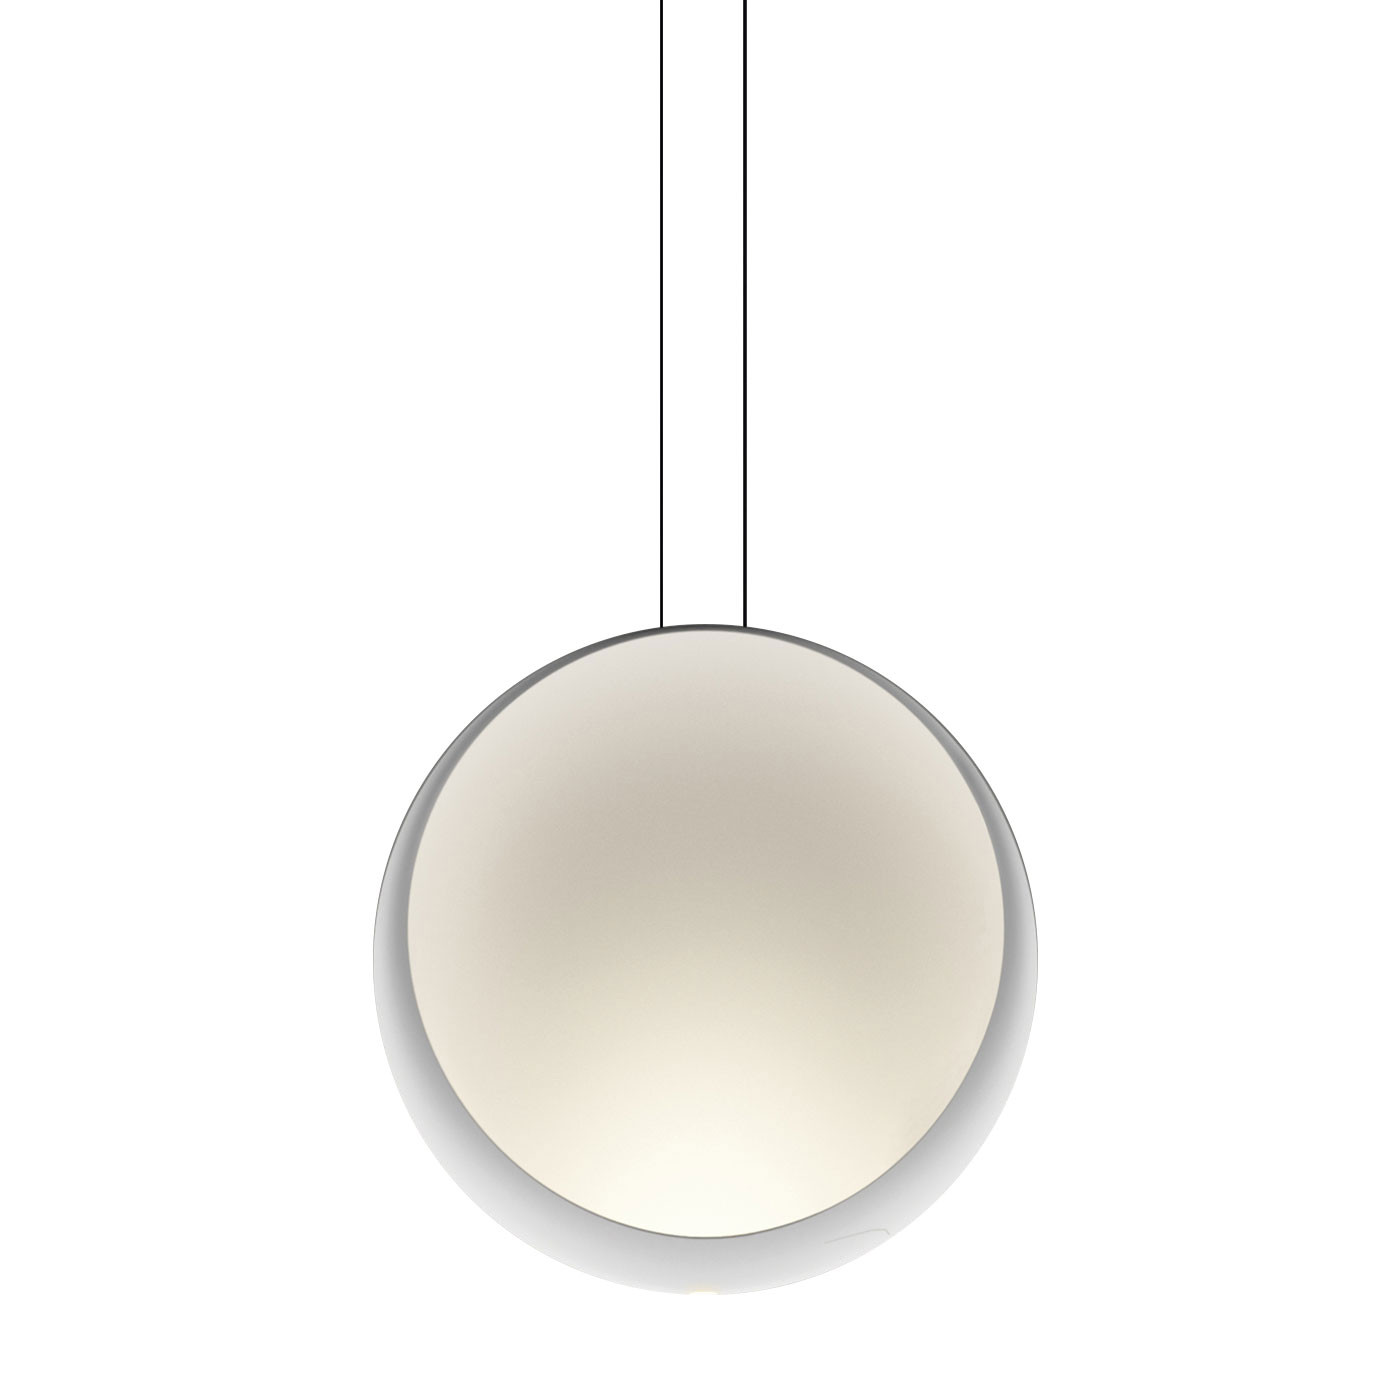 Vibia Cosmos 2502 Pendant Lamp Large At Nostraforma